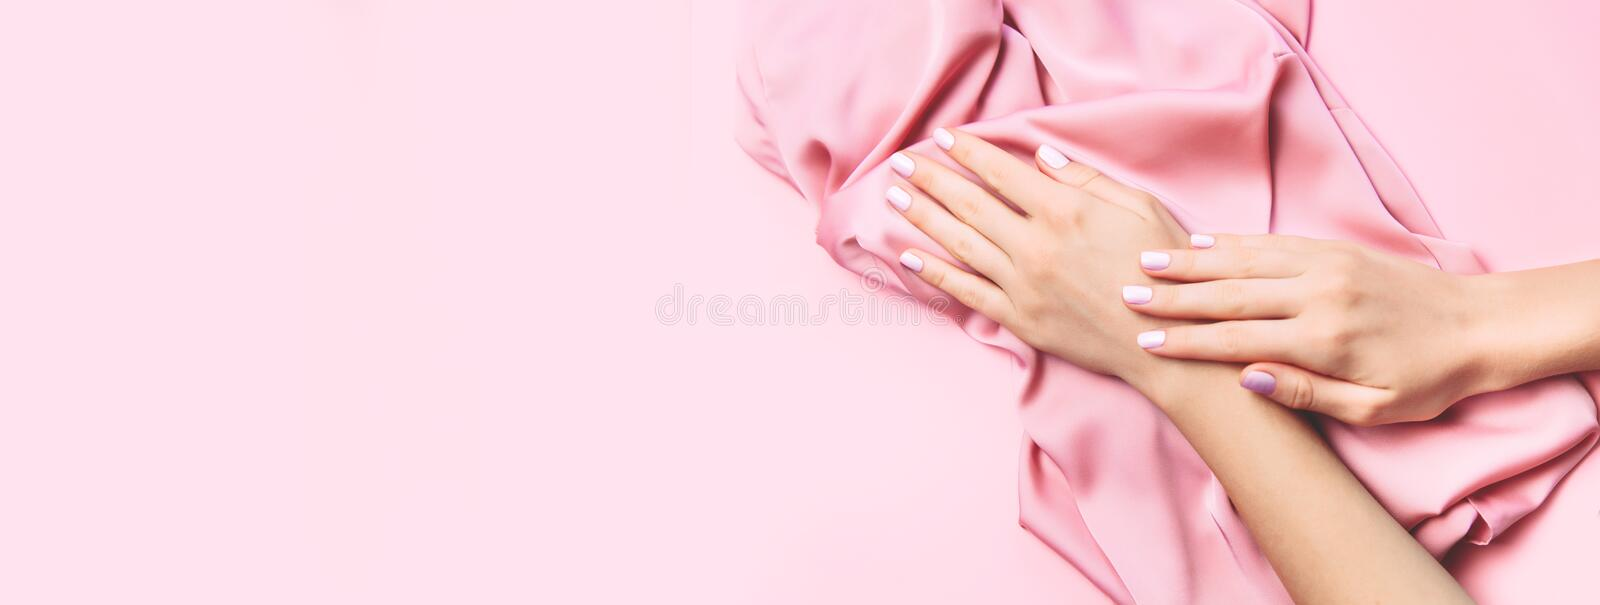 Beautiful woman manicure on creative pink background with silk fabric. Minimalist trend royalty free stock photography